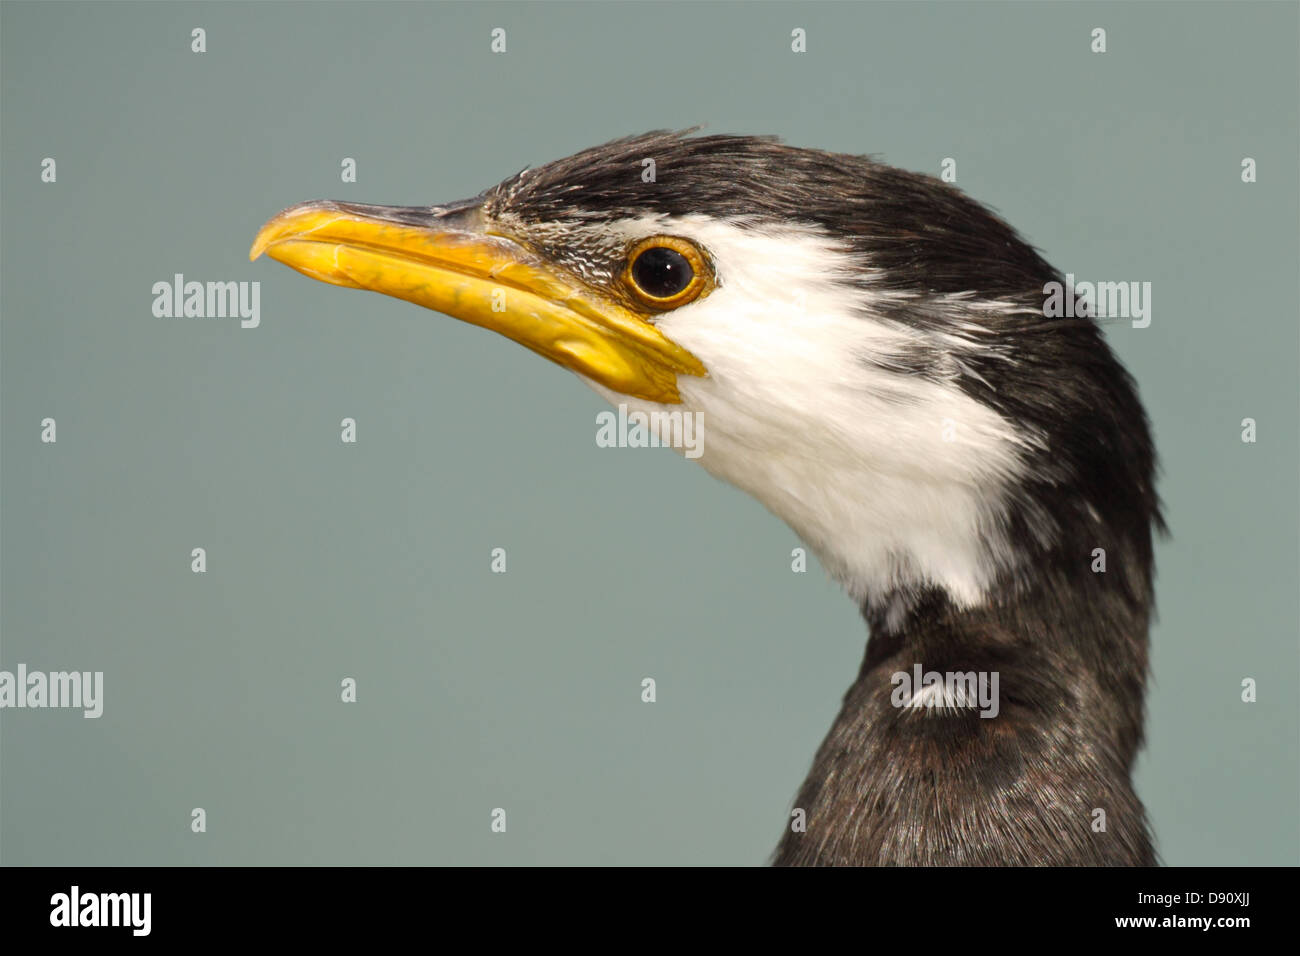 Portrait of a Little Pied Shag with a bright yellow beak. - Stock Image